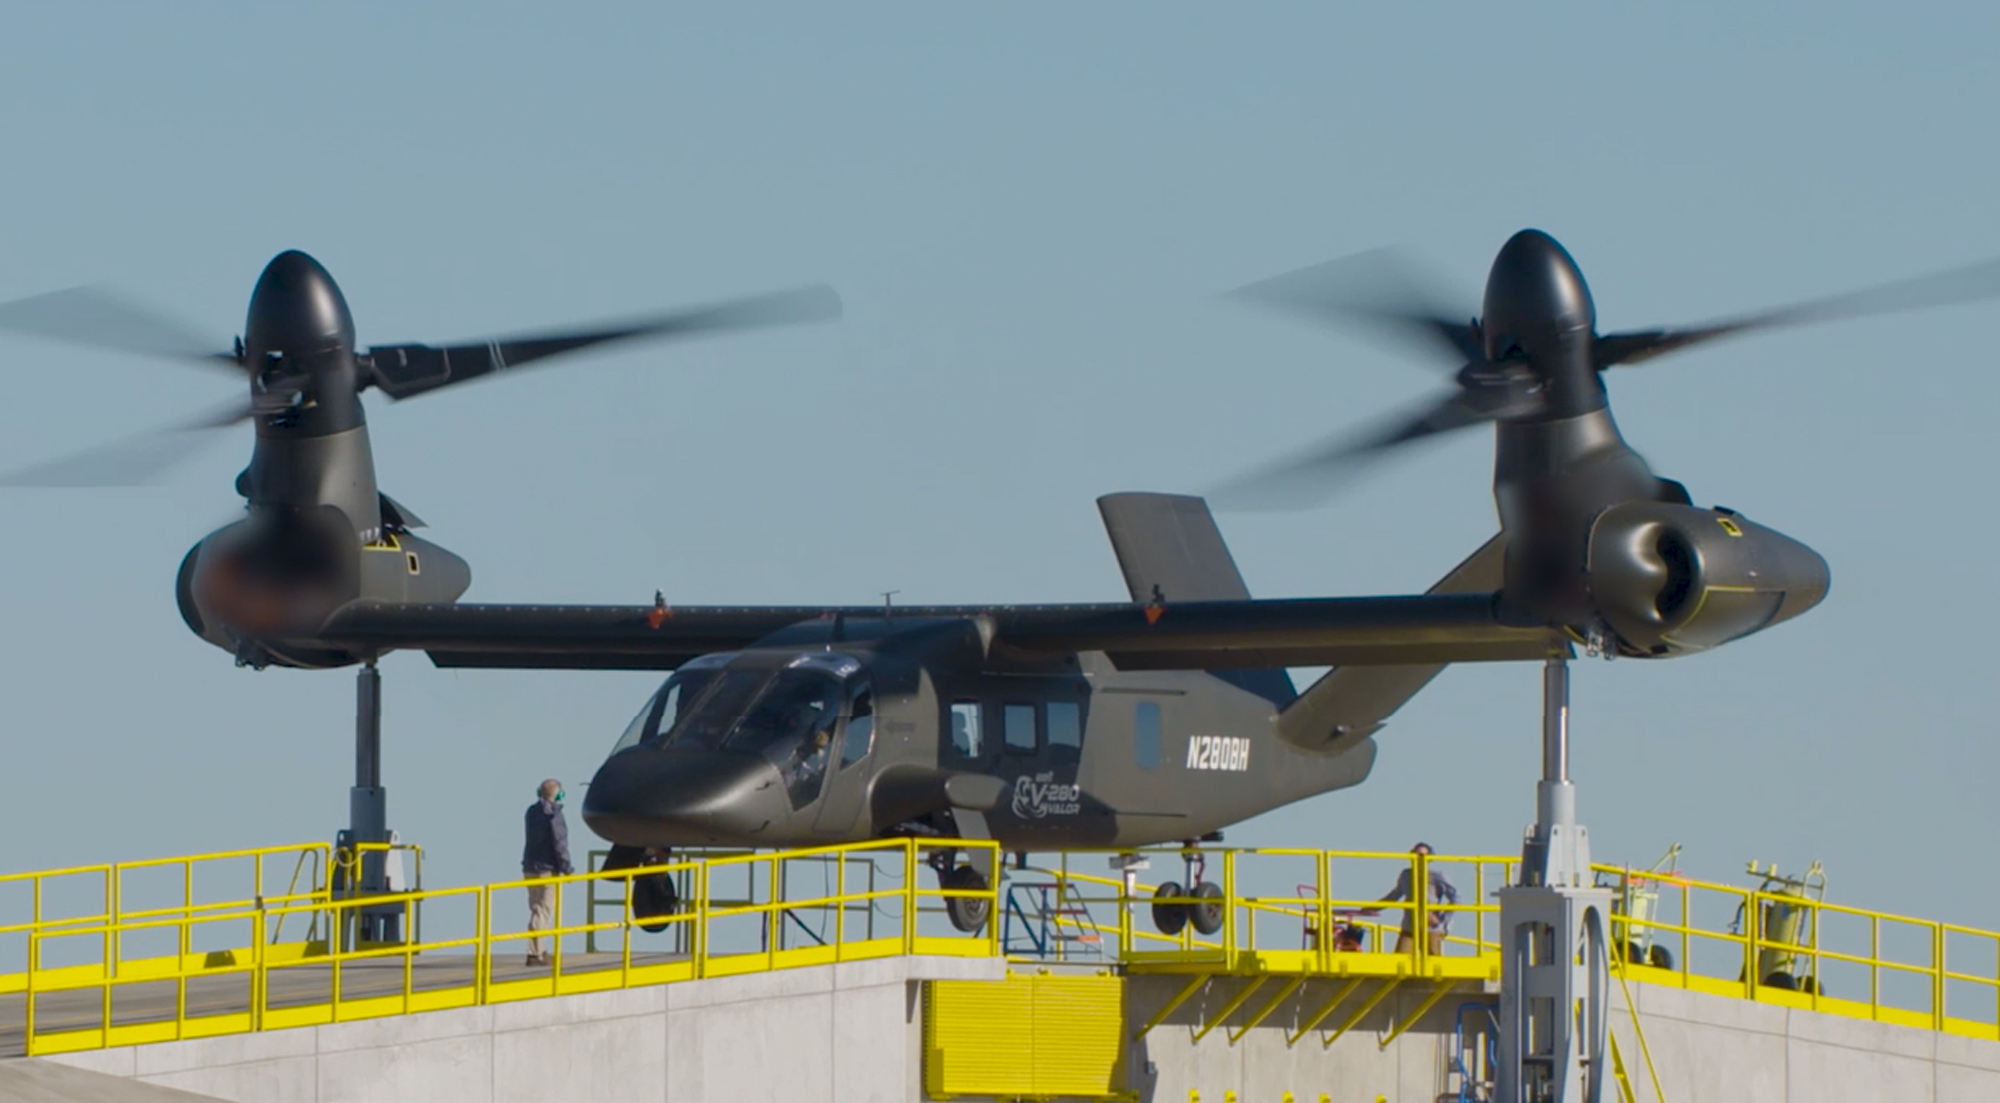 bell helicopter amarillo tx with Bell V 280 Tiltrotor Achieves Controlled Conversions on Bellhc likewise Helicopter piloting likewise West texas am univer 9553 31 in addition 1655258 Post127 together with 34030.